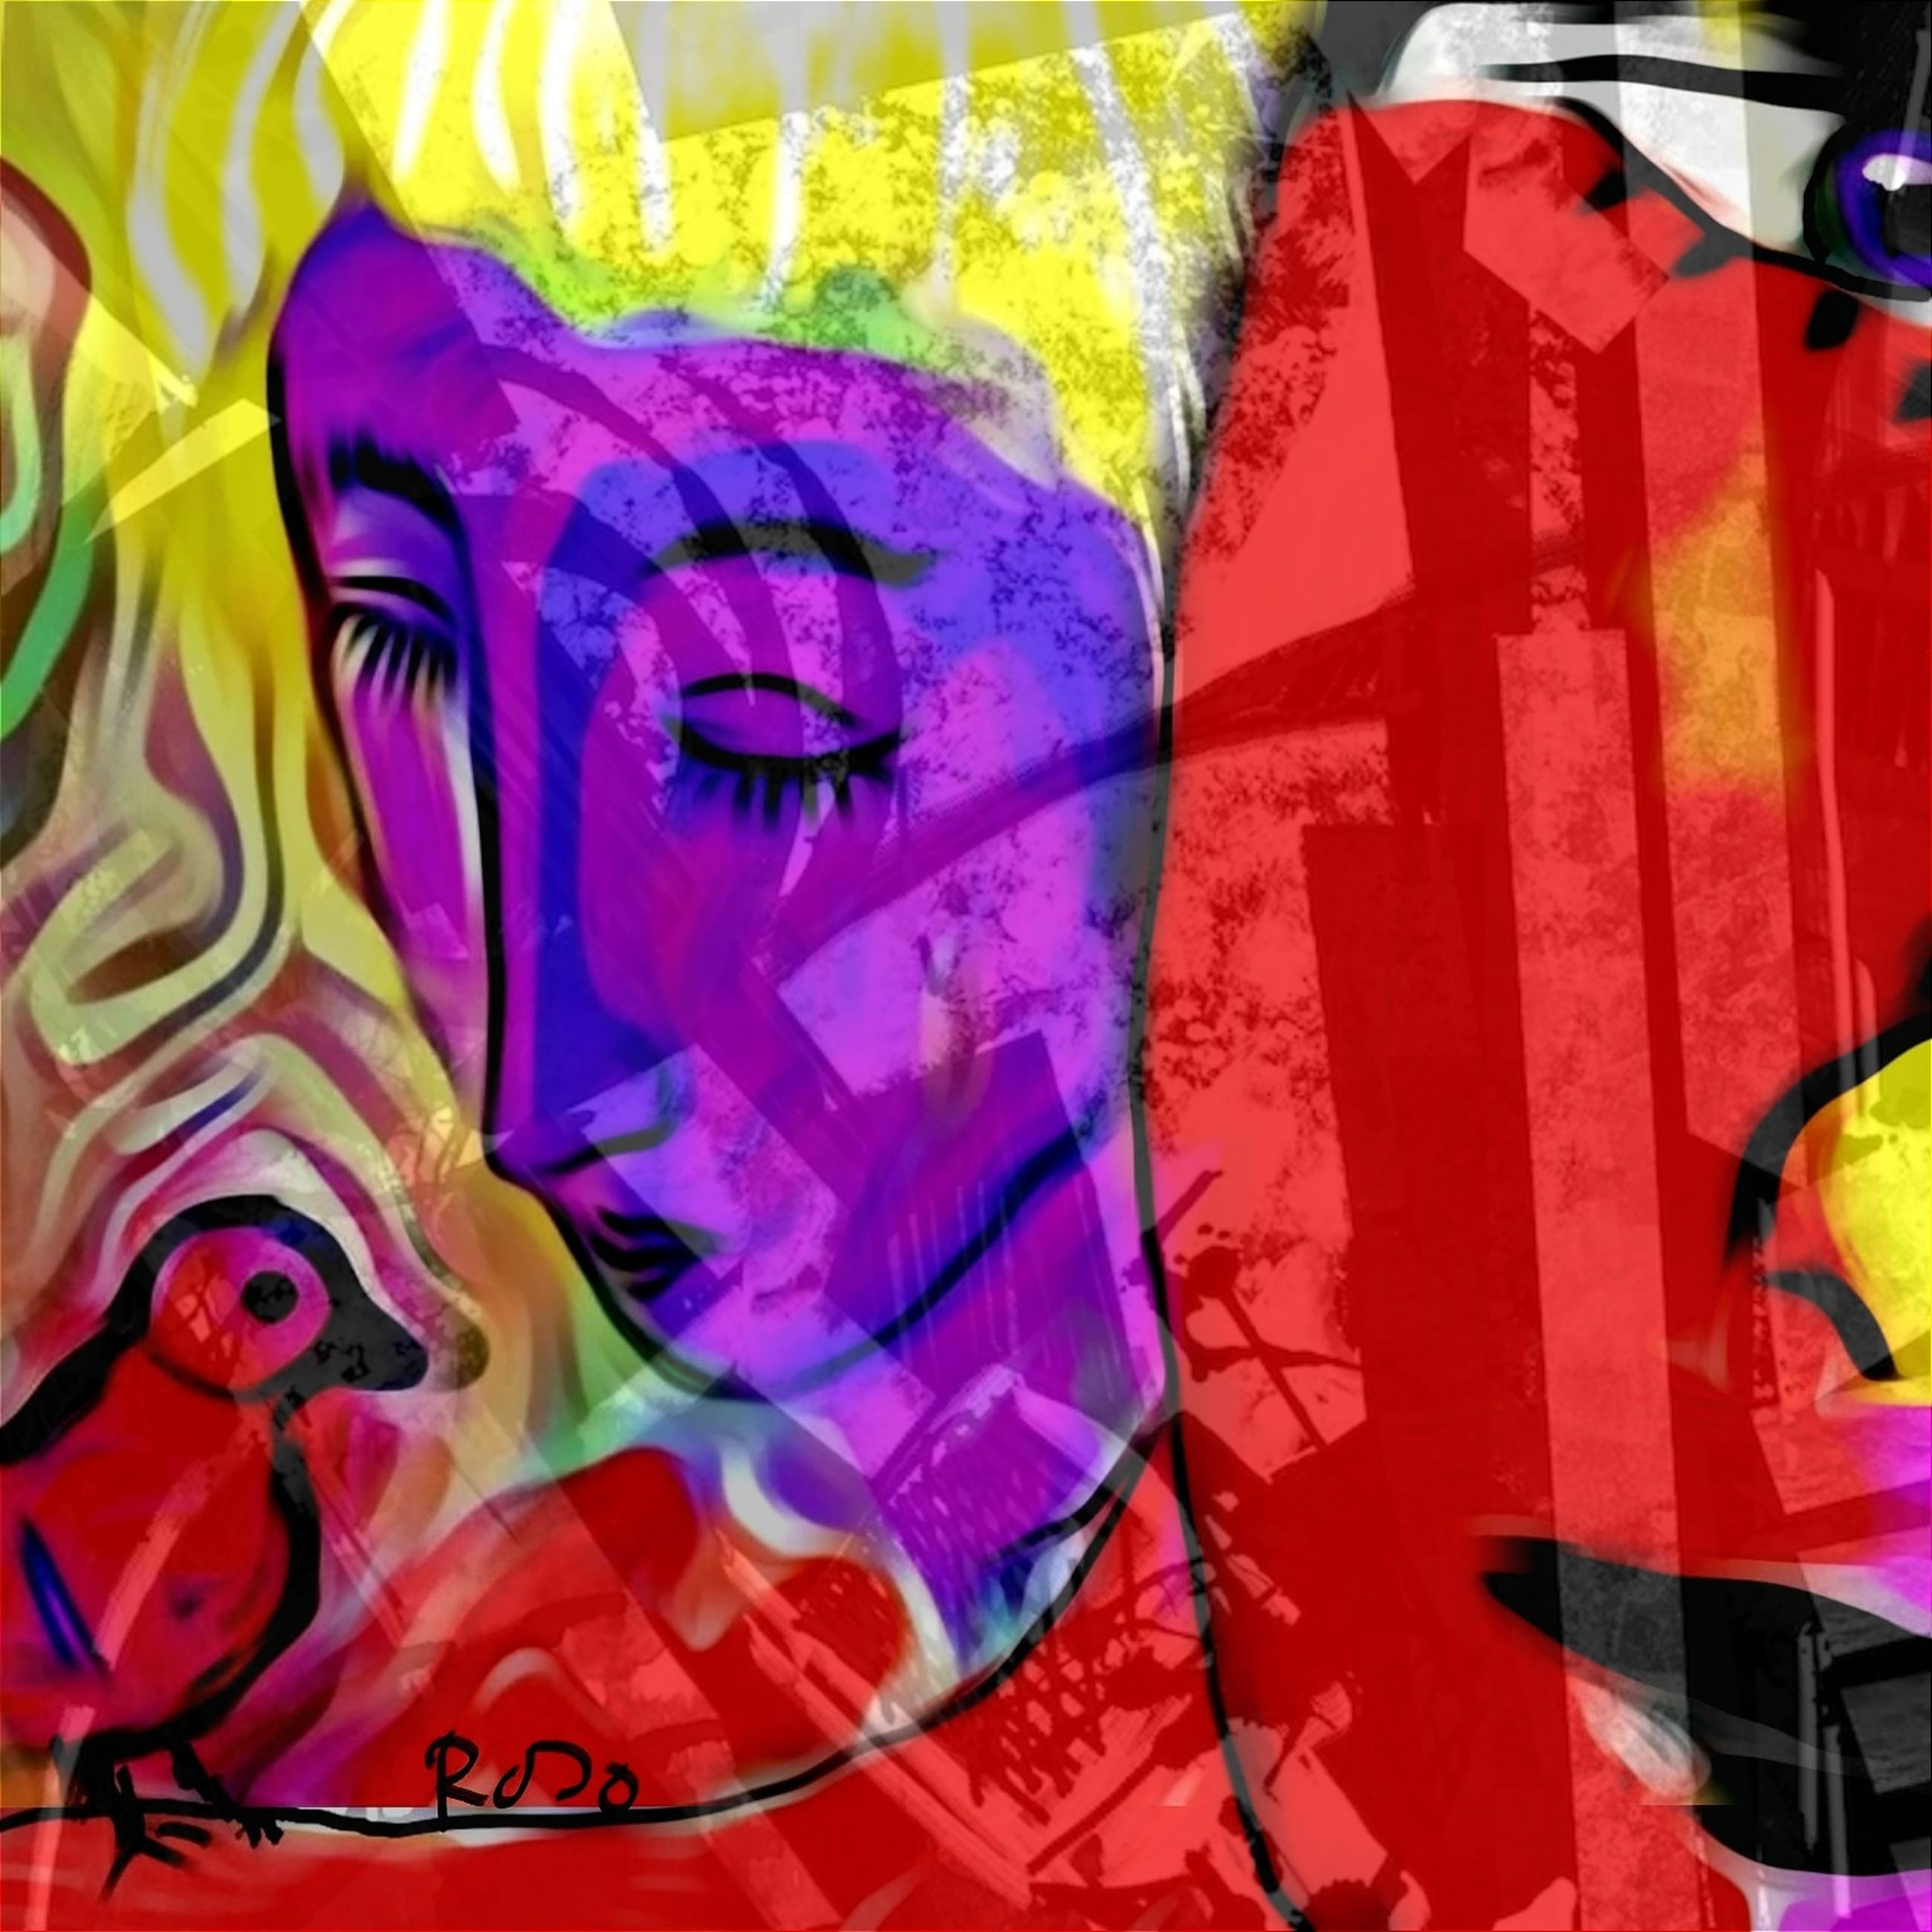 multi colored, creativity, art, graffiti, paint, no people, full frame, vibrant color, street art, representation, backgrounds, abstract, pattern, drawing, close-up, wall - building feature, craft